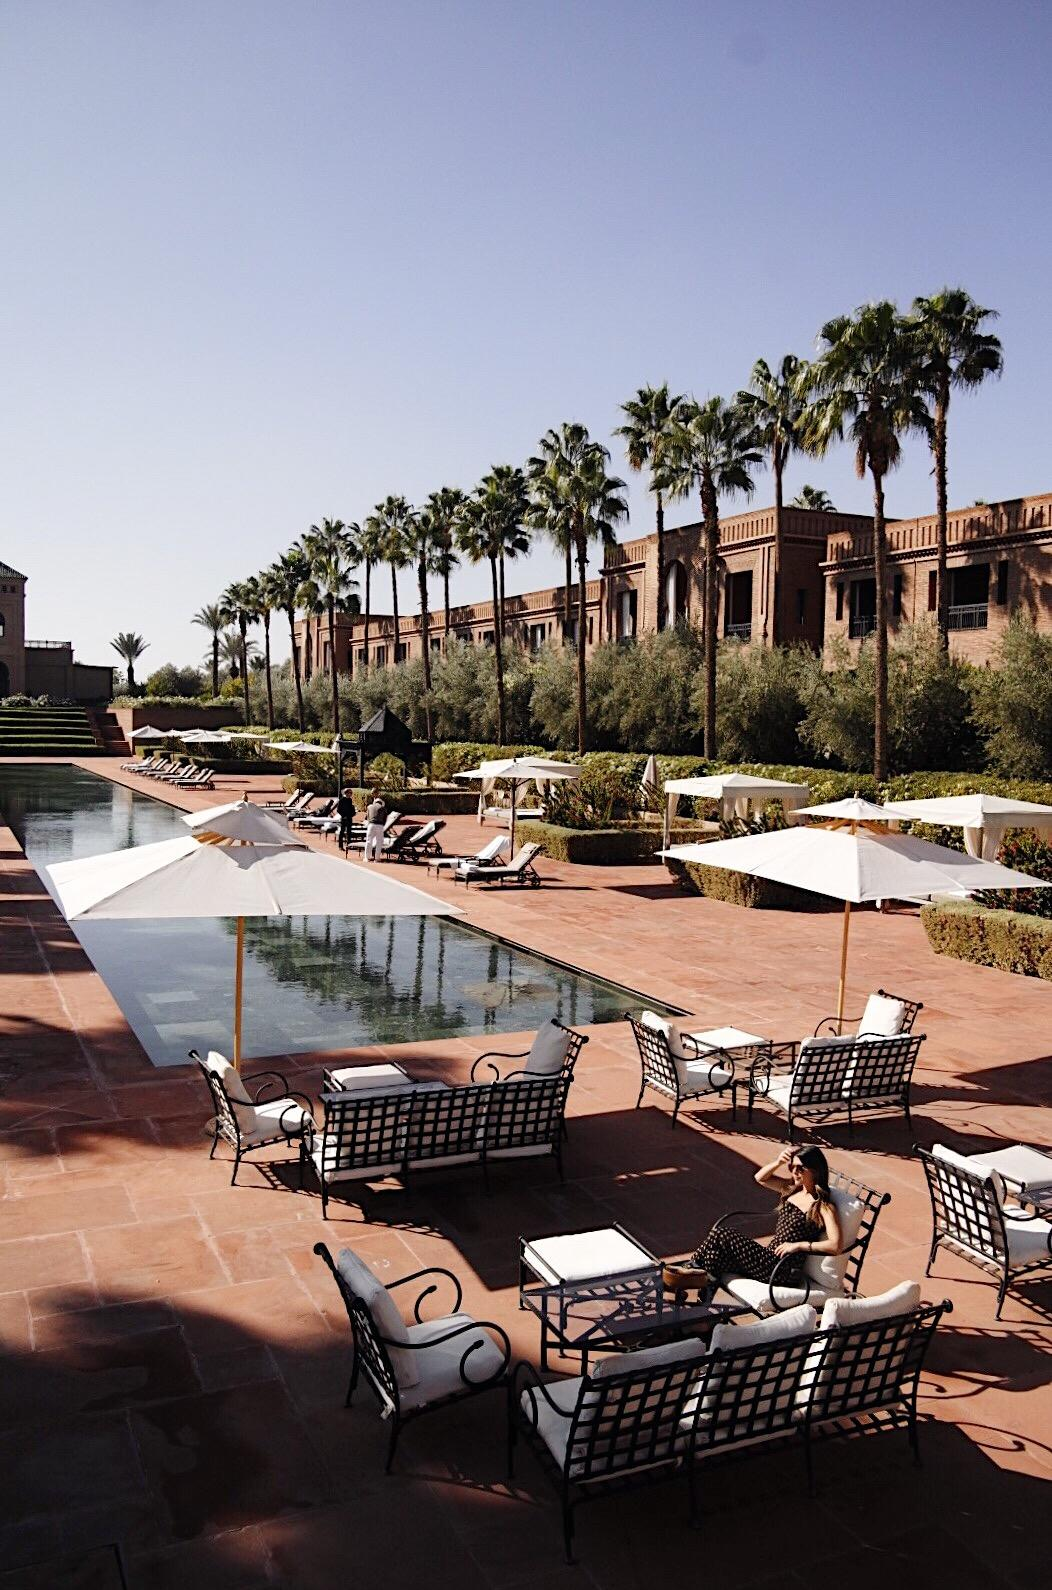 The Pool at the Selman Marrakech